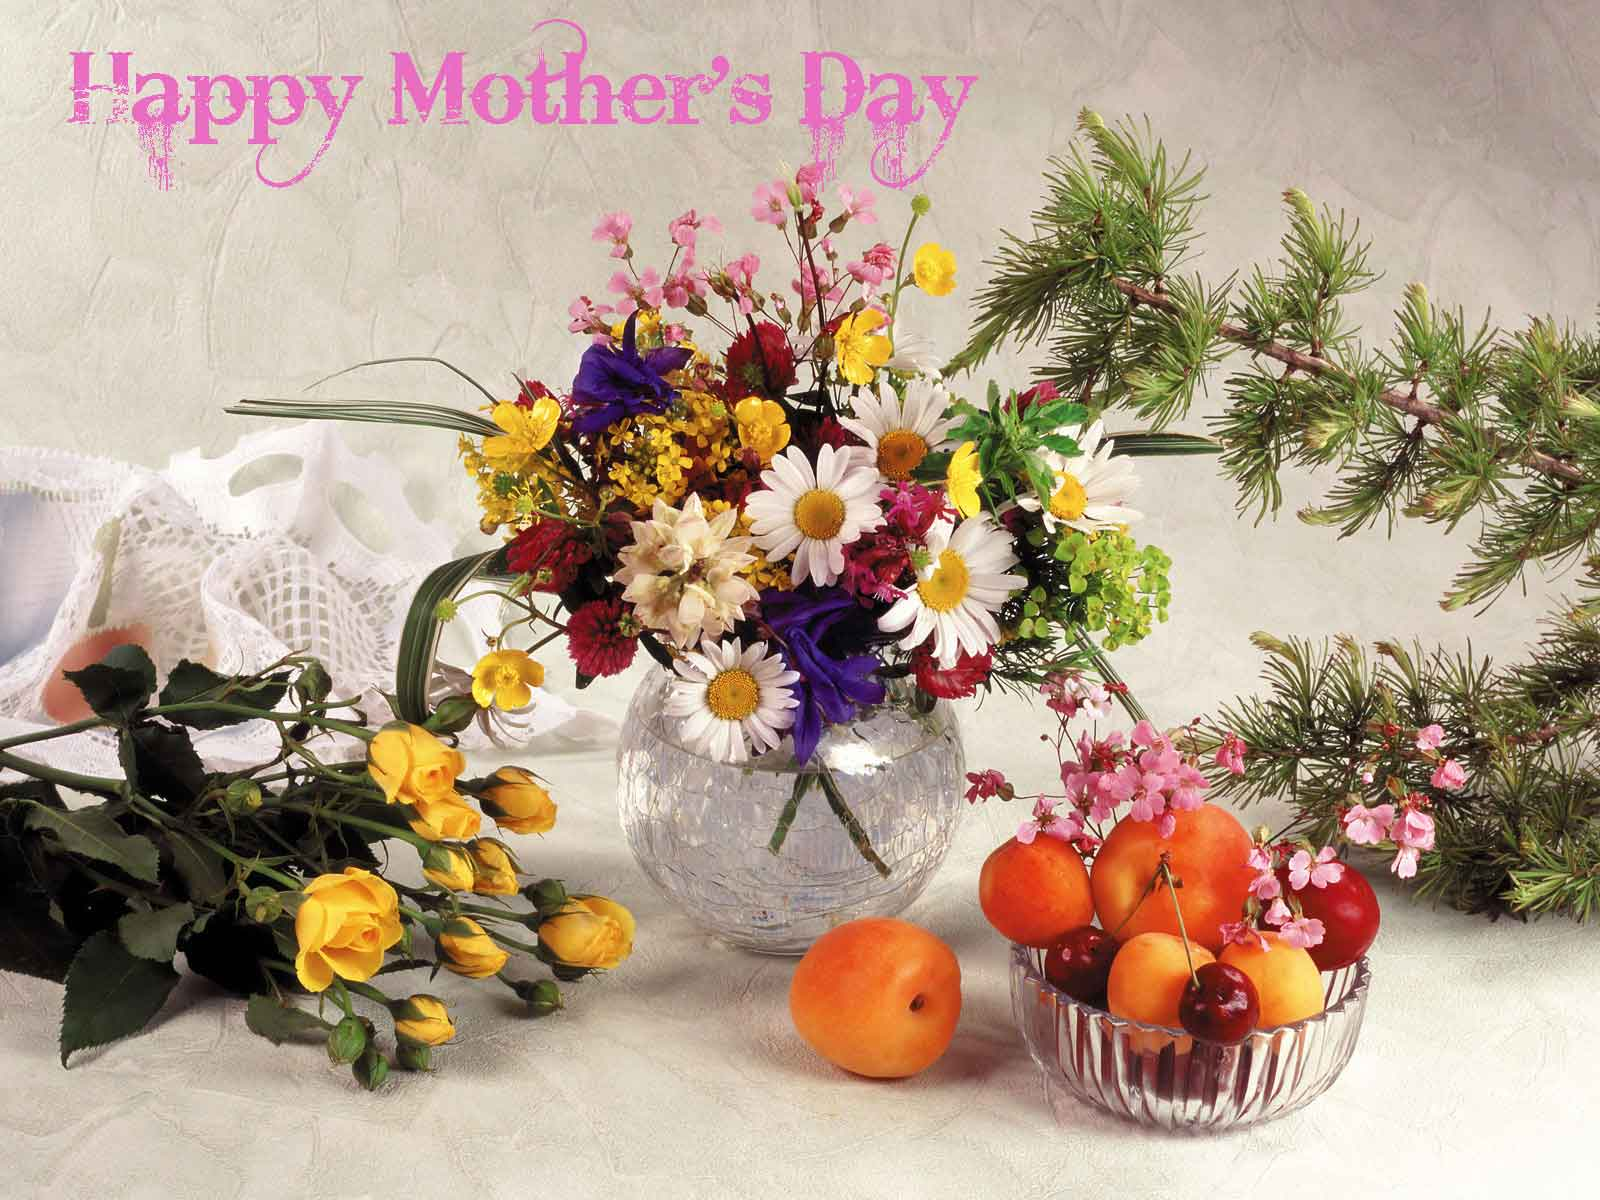 Happy Mothers Day Desktop Wallpapers Desktop Background Wallpapers 1600x1200